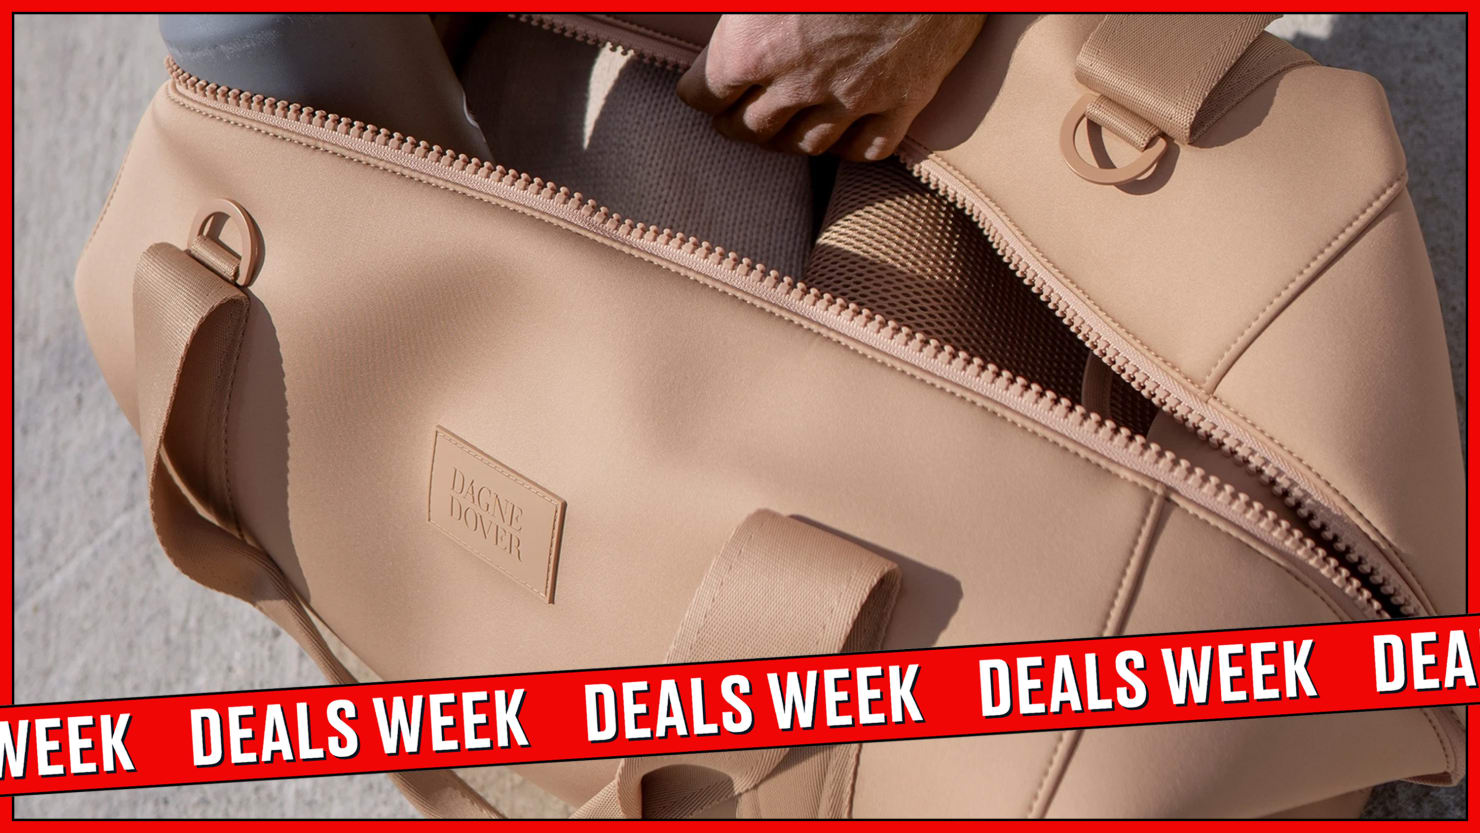 Our Favorite Bags From Dagne Dover Are 20% Off for Cyber Monday